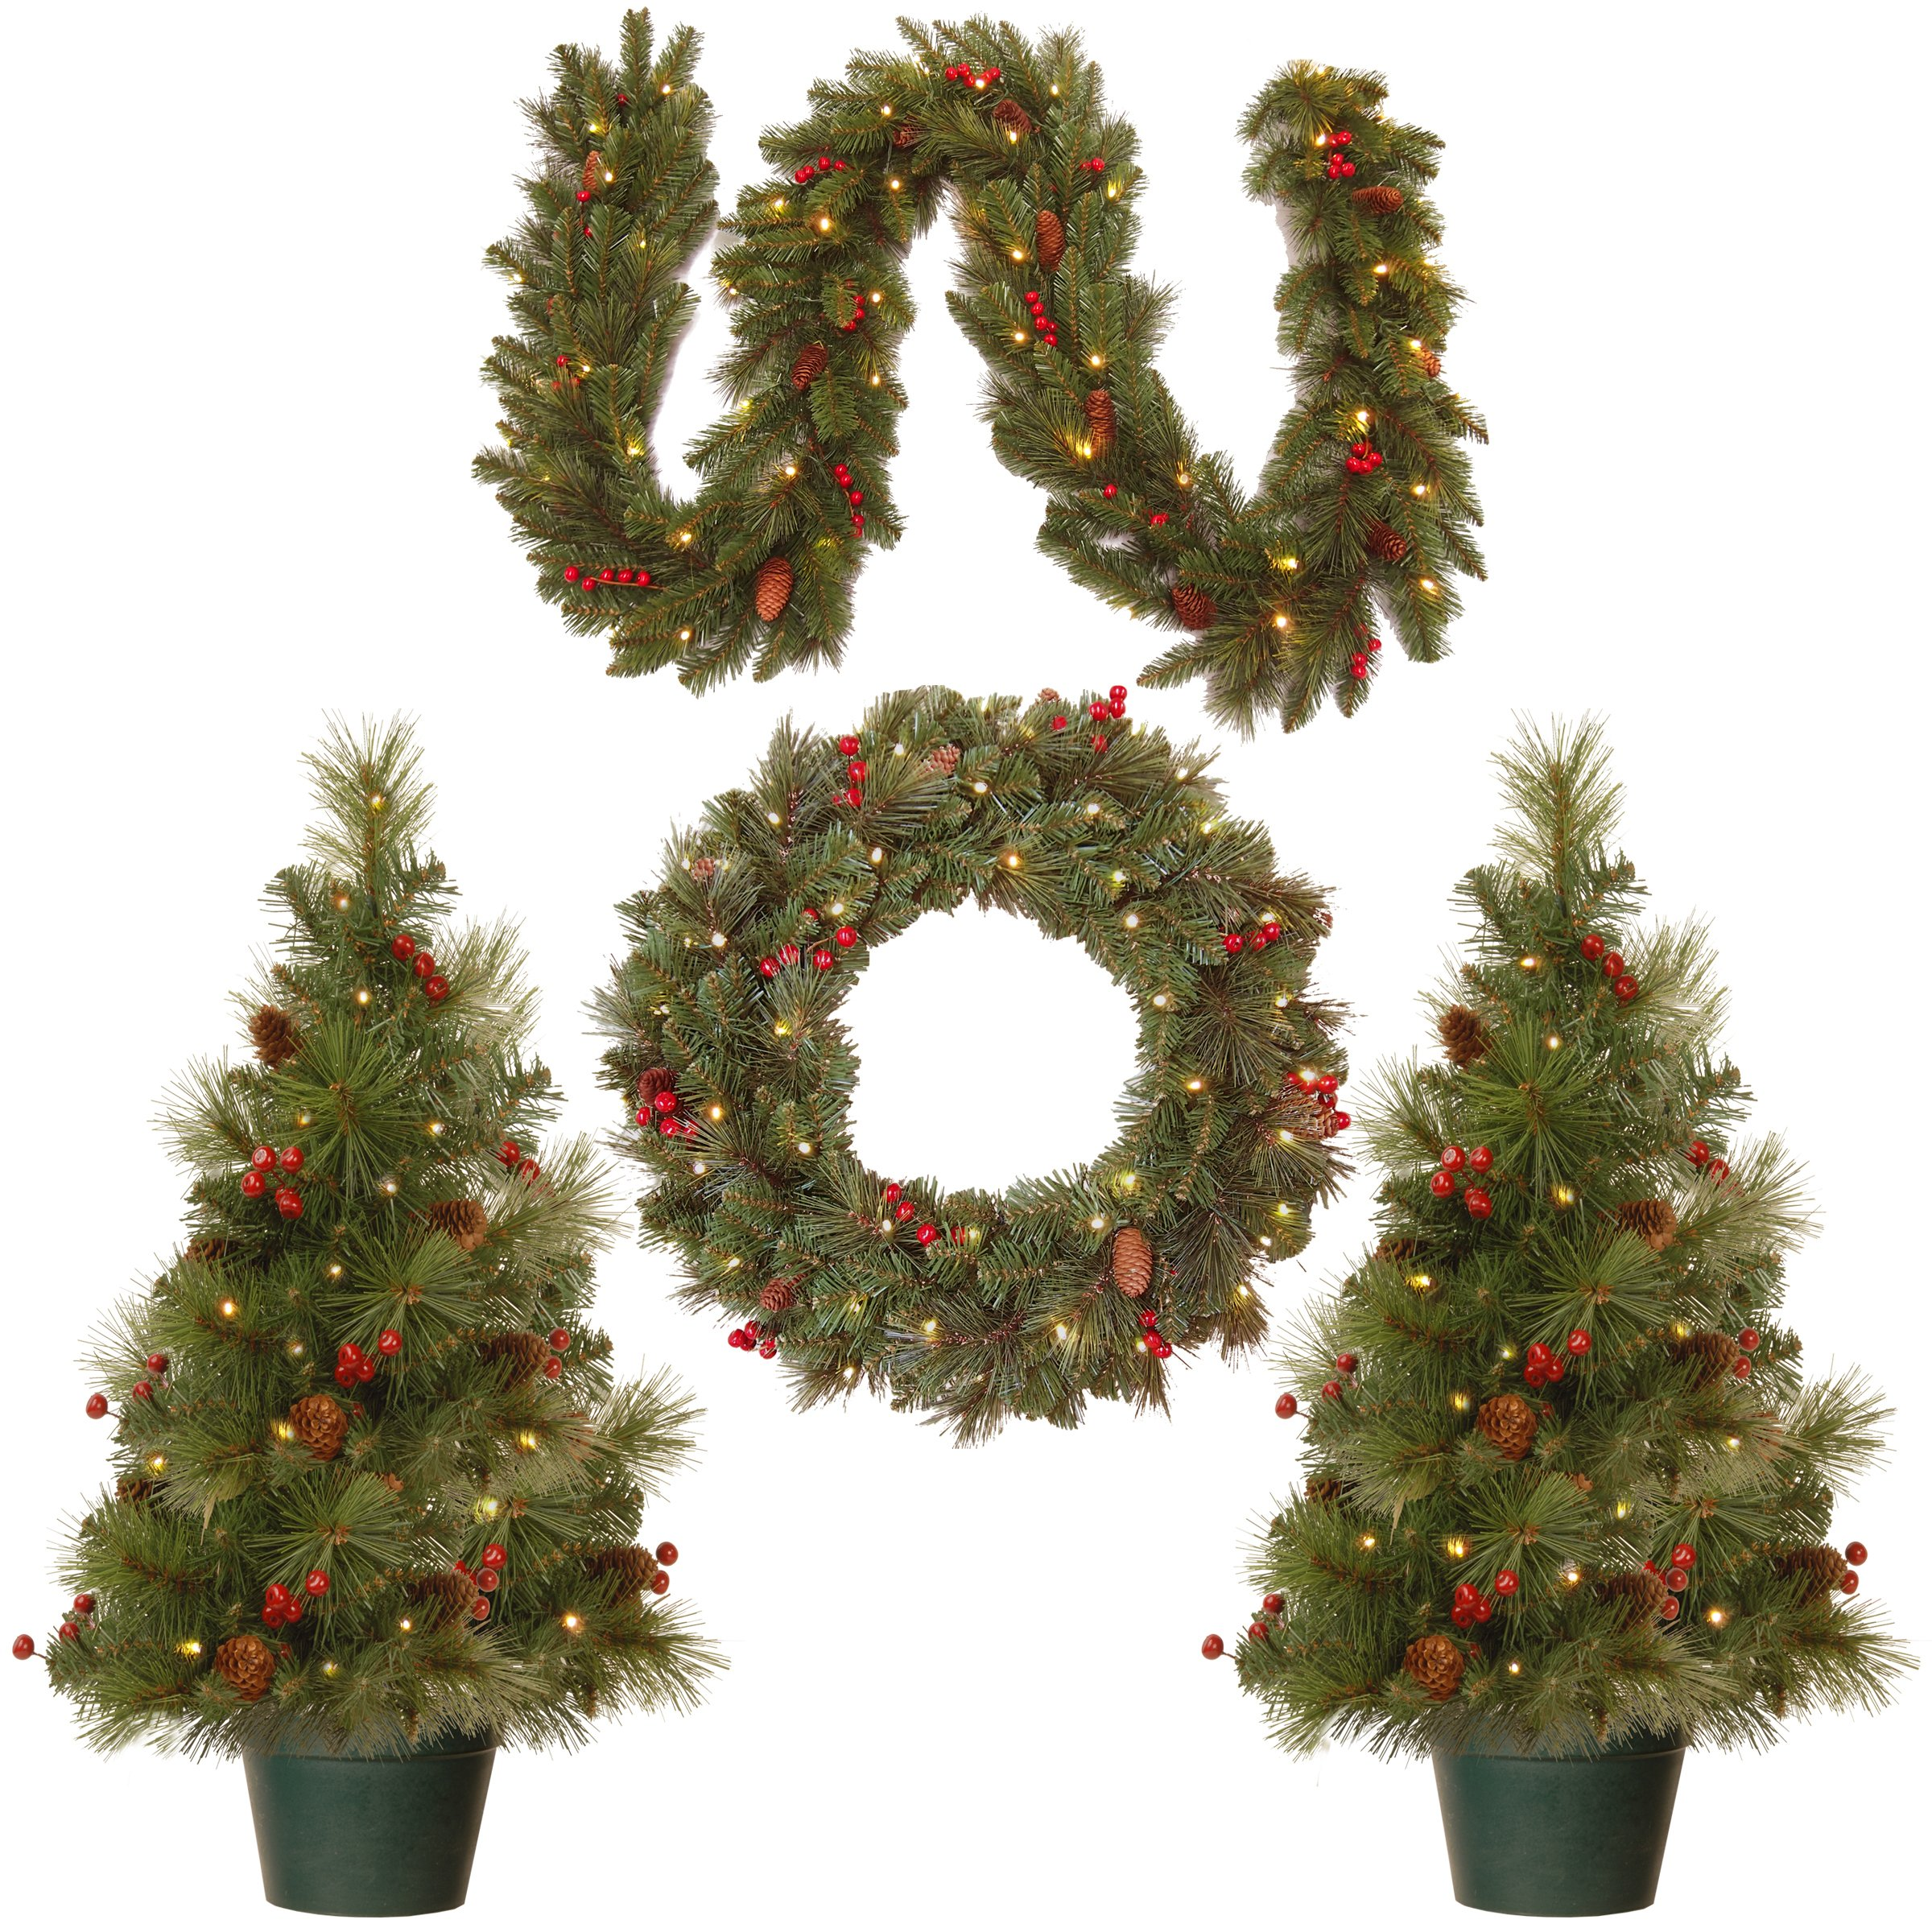 National Tree Holiday Decorating Assortment with 2 3 Foot Entrance Trees, 1 9 Foot by 8 Inch Garland and 1 24 Inch Wreath all with Warm White Battery Operated LED Lights (ED7-PRO-ASST)